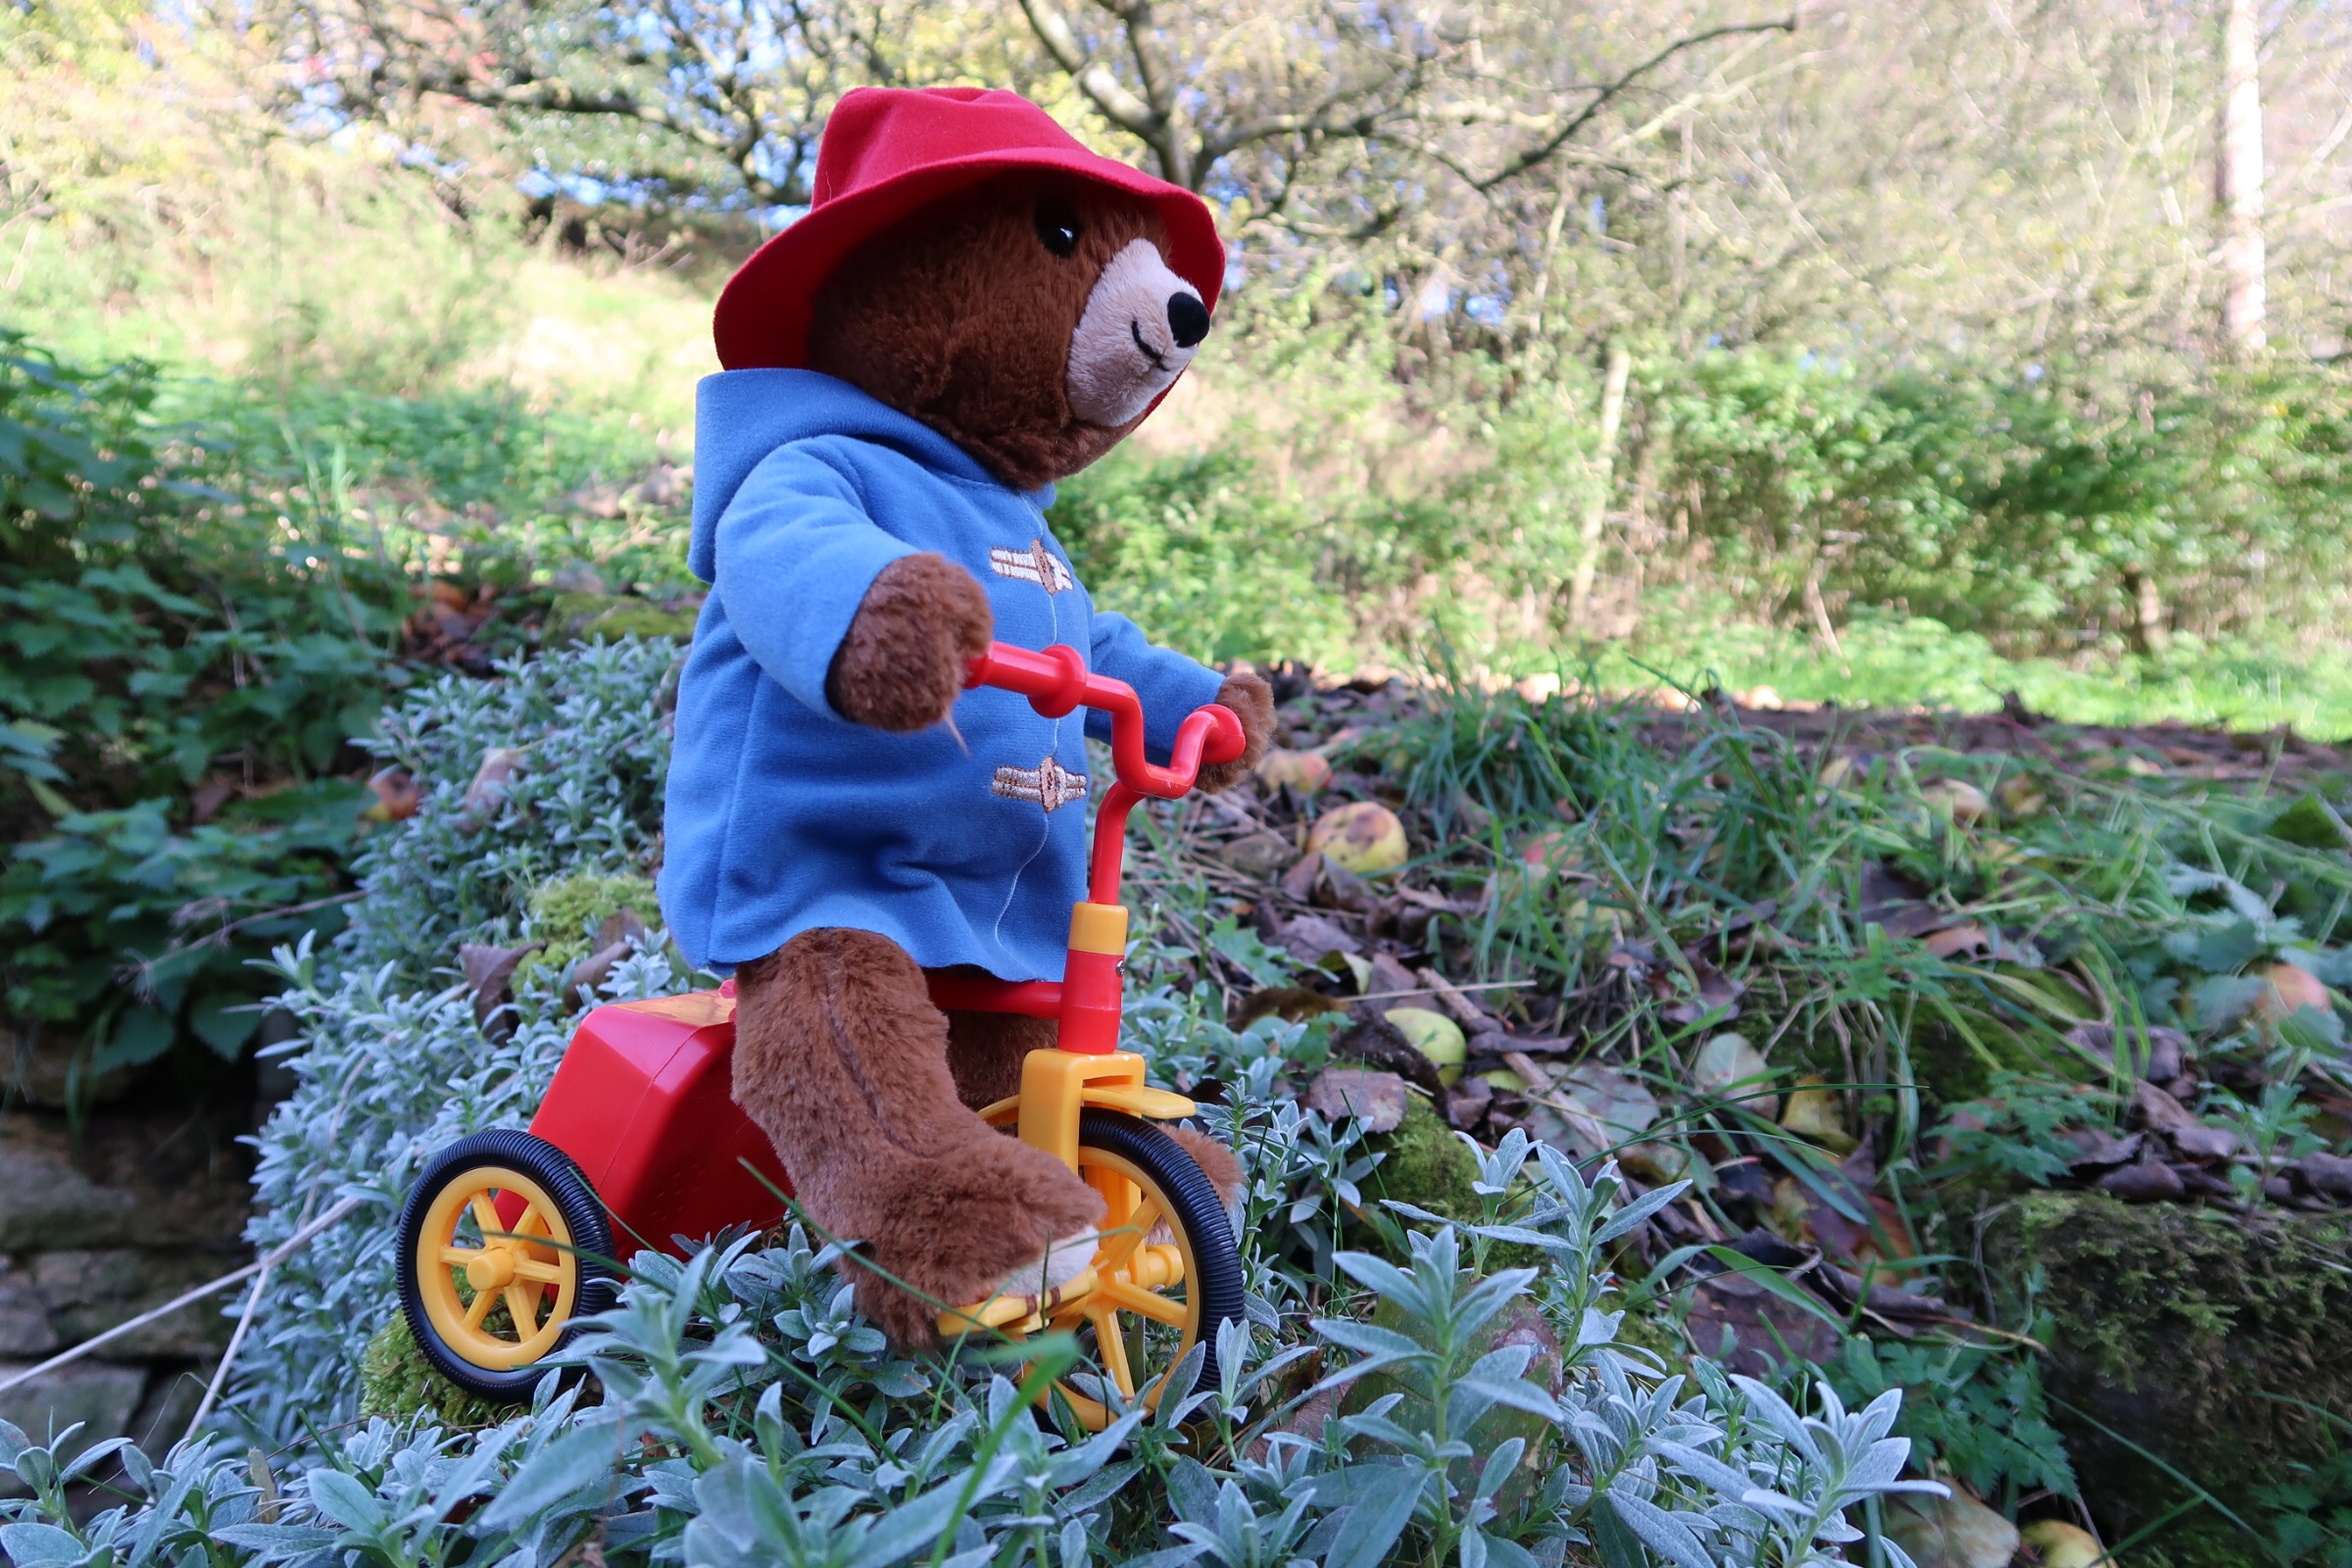 A side view of the Cycling Paddington toy with his little red and yellow tricycle.